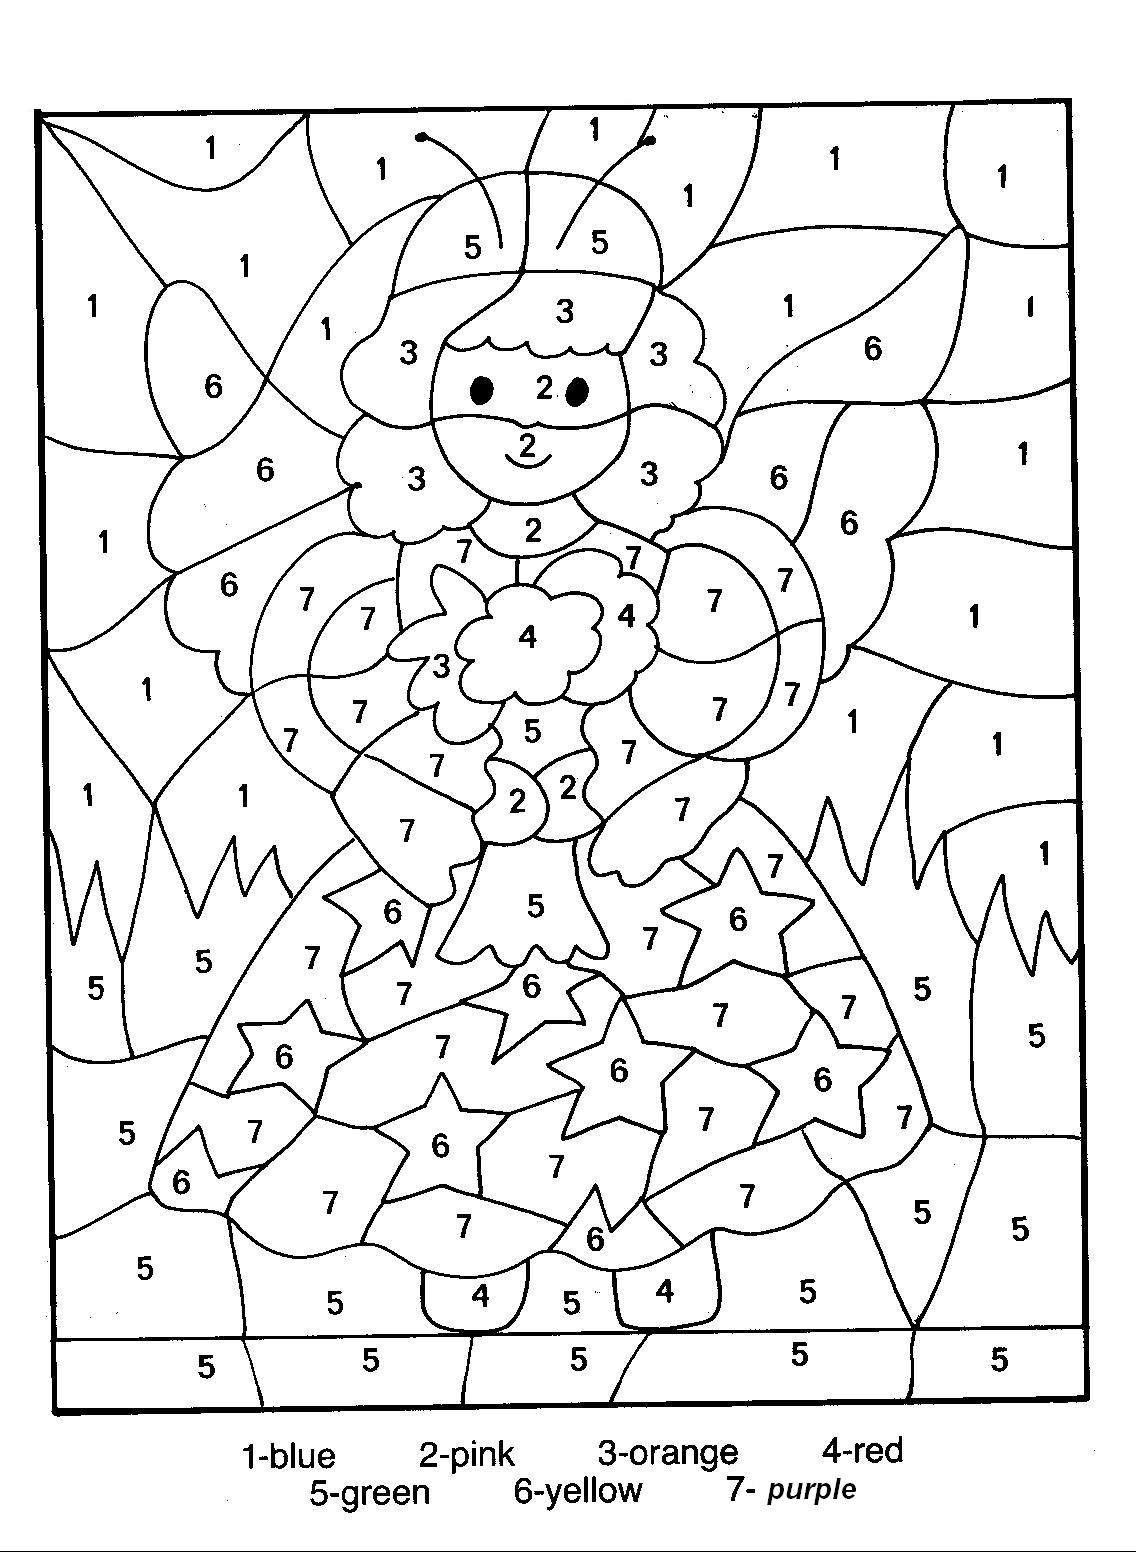 coloring by number for kids free color by number worksheets cool2bkids for coloring number by kids